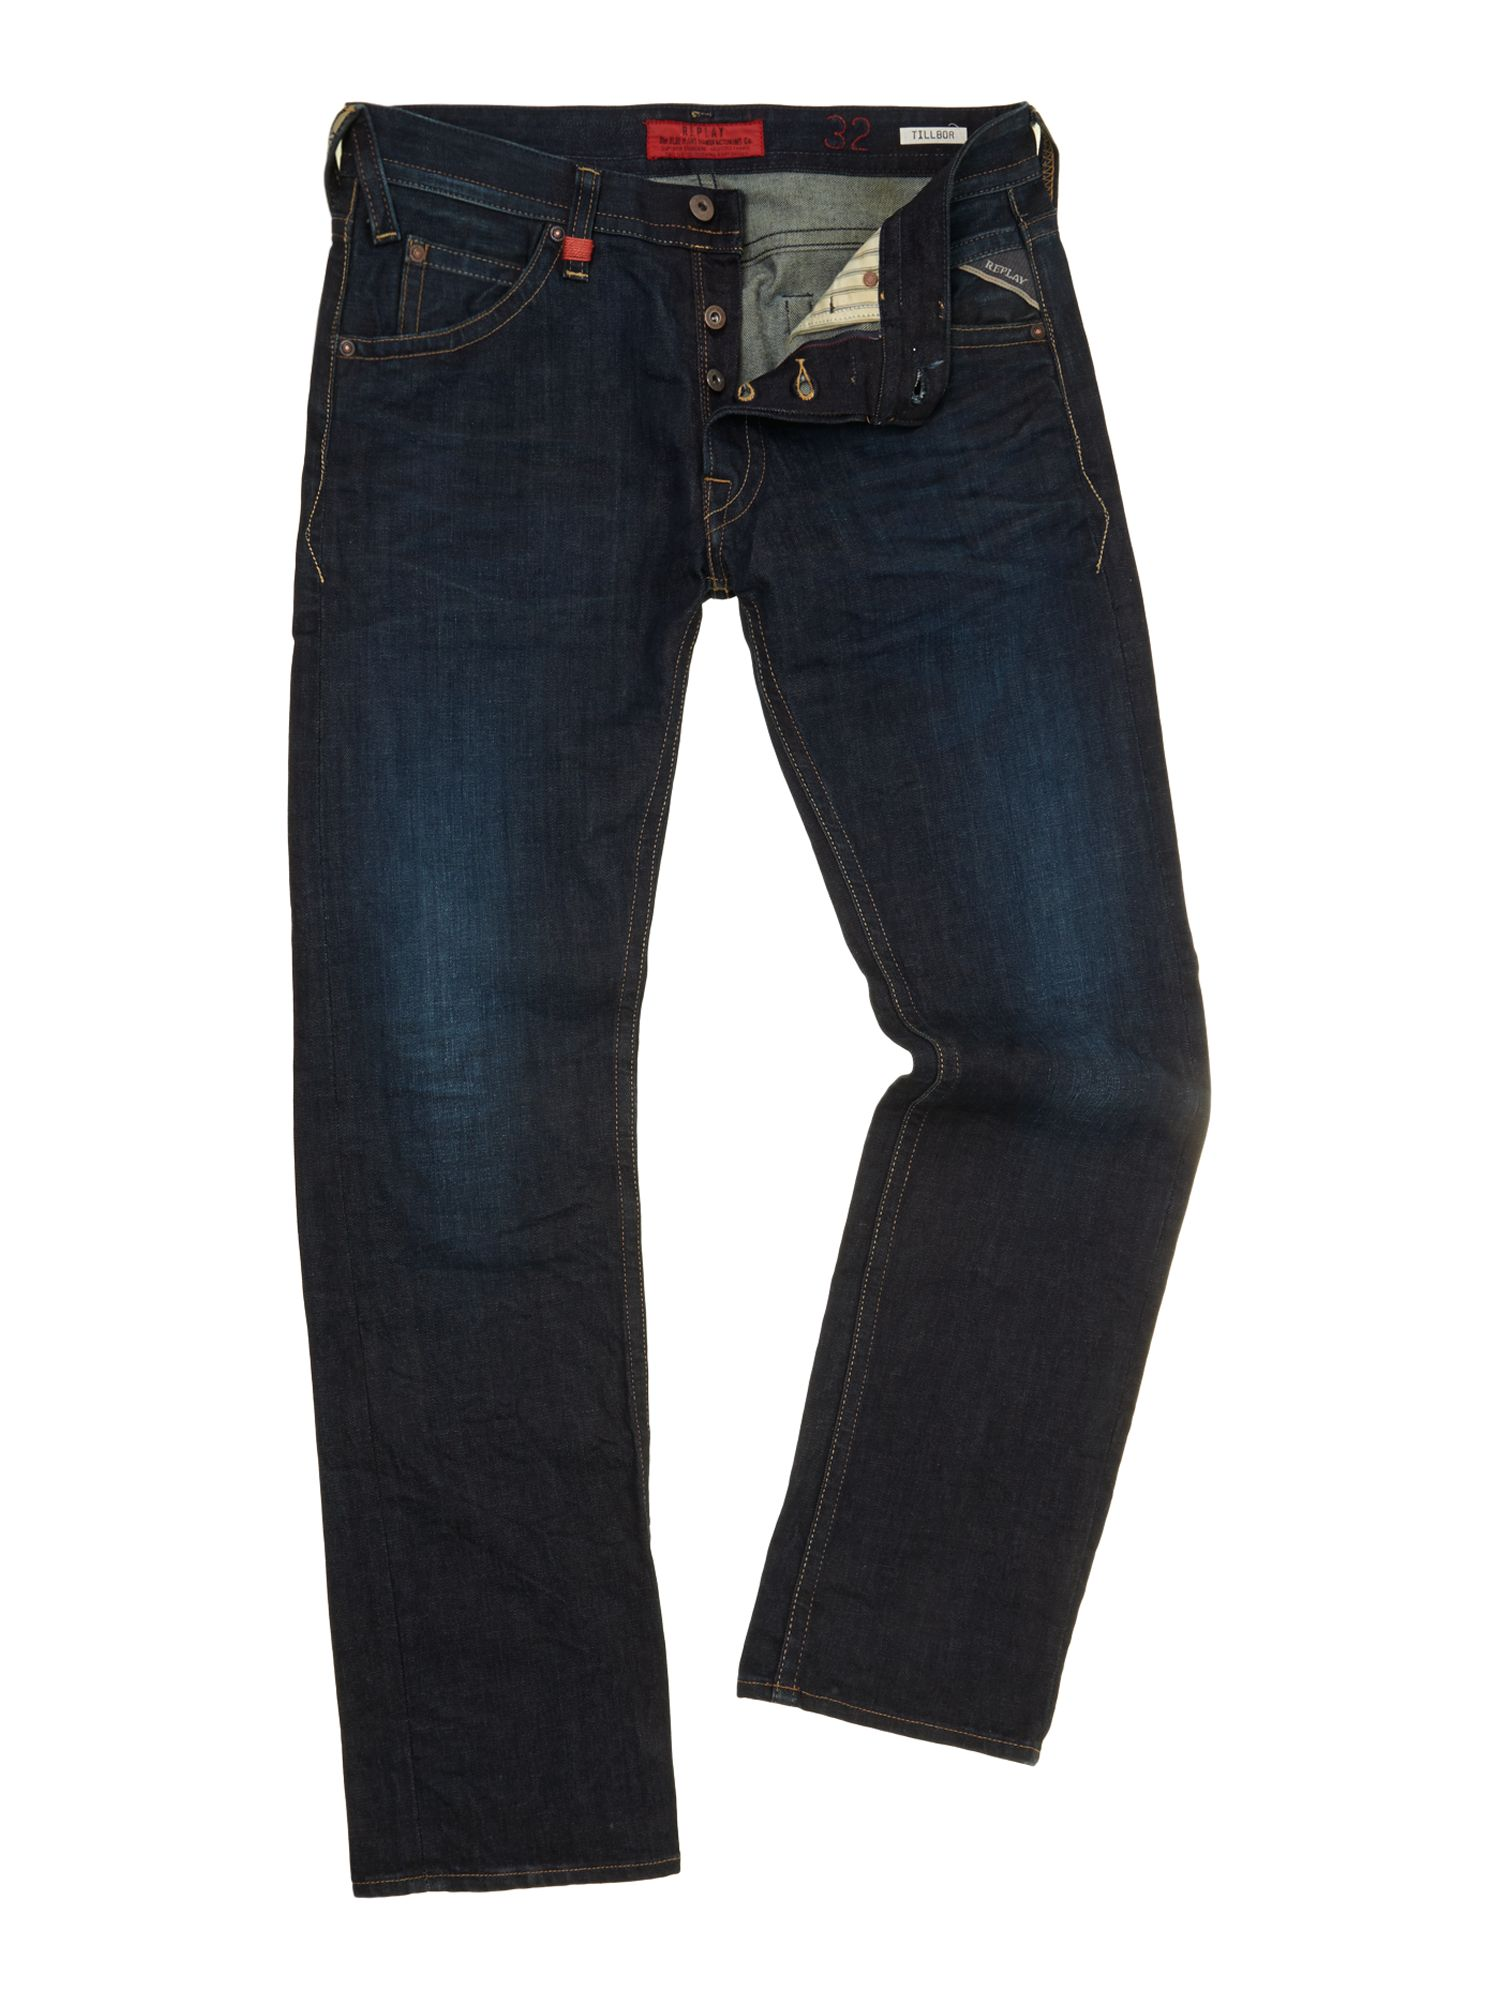 Tillbor denim jeans, soccer fit